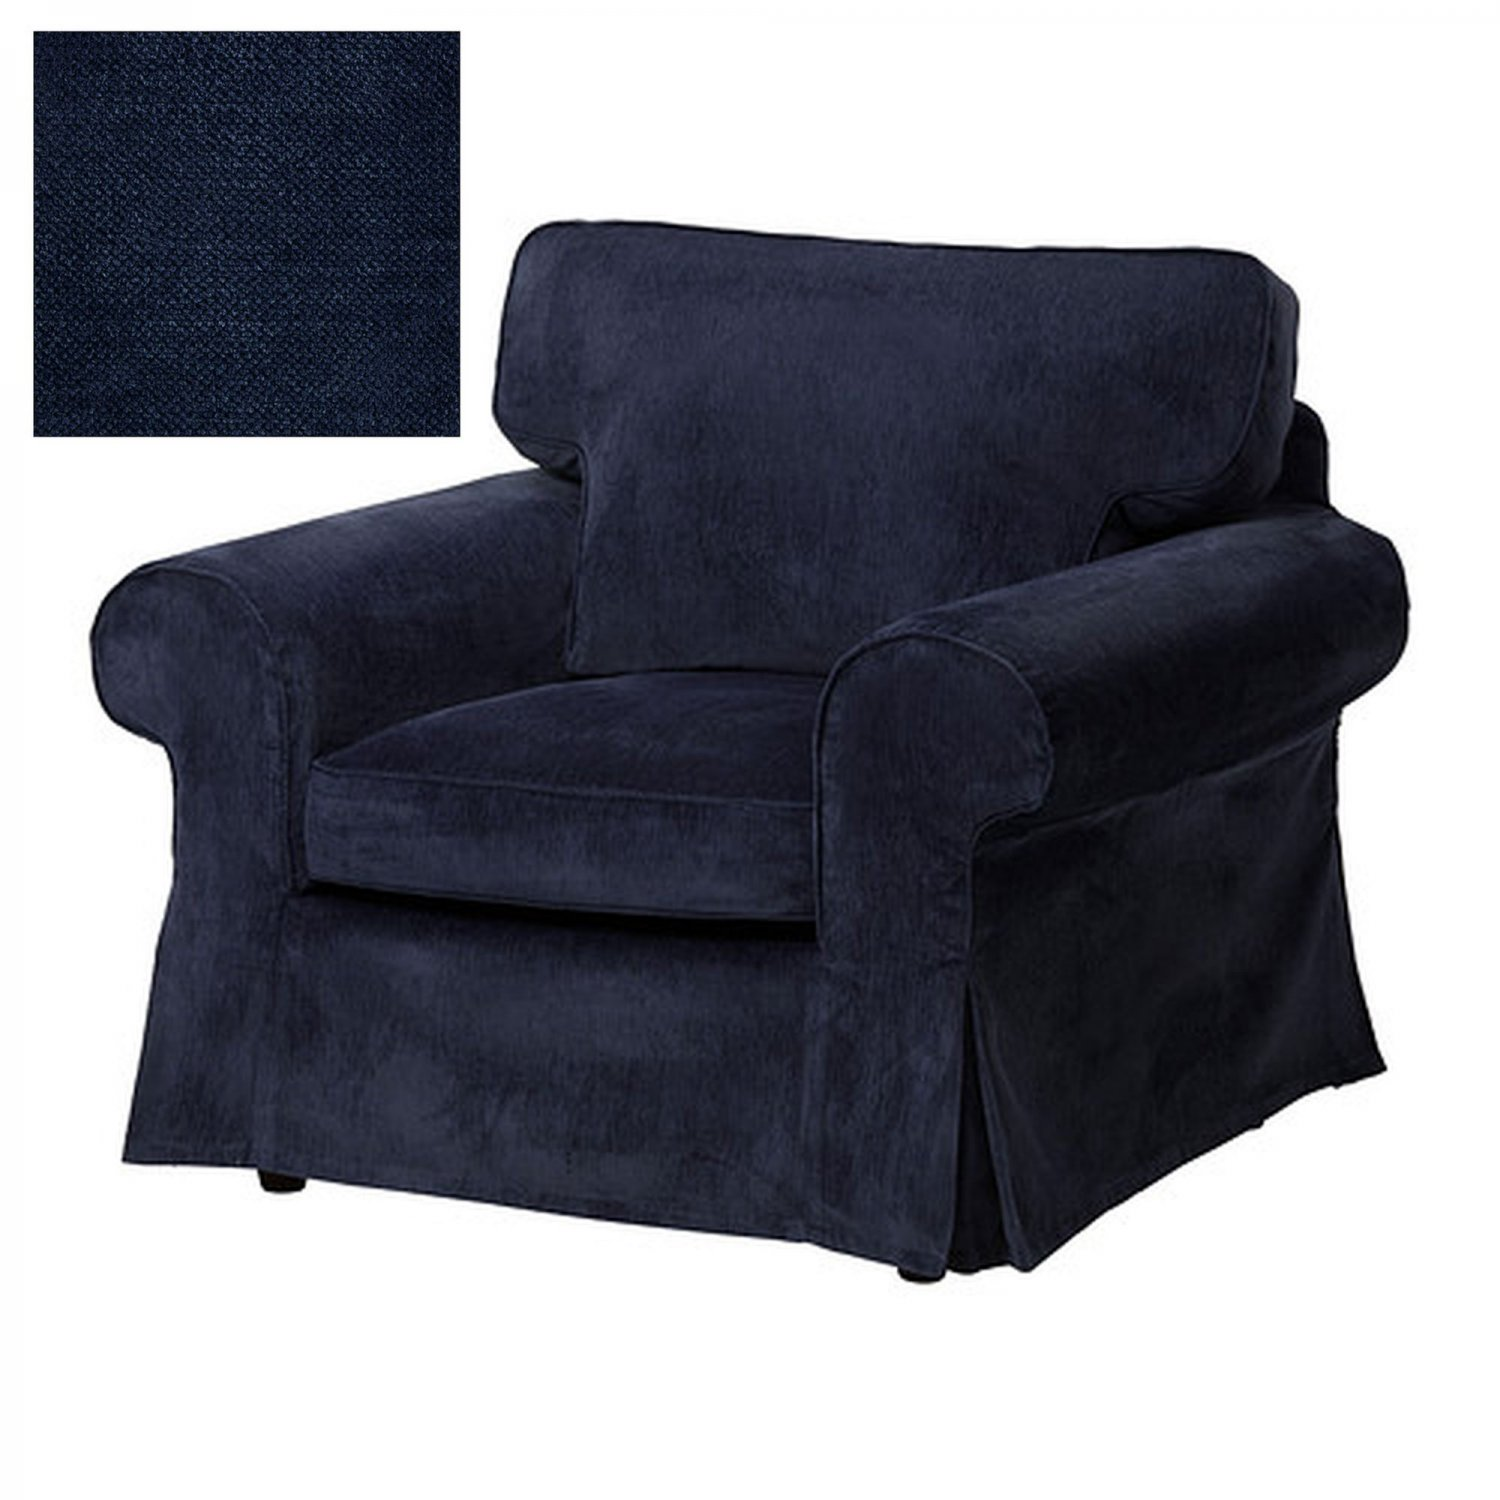 ikea tullsta chair covers uk linenfold cover ektorp armchair slipcover vellinge dark blue